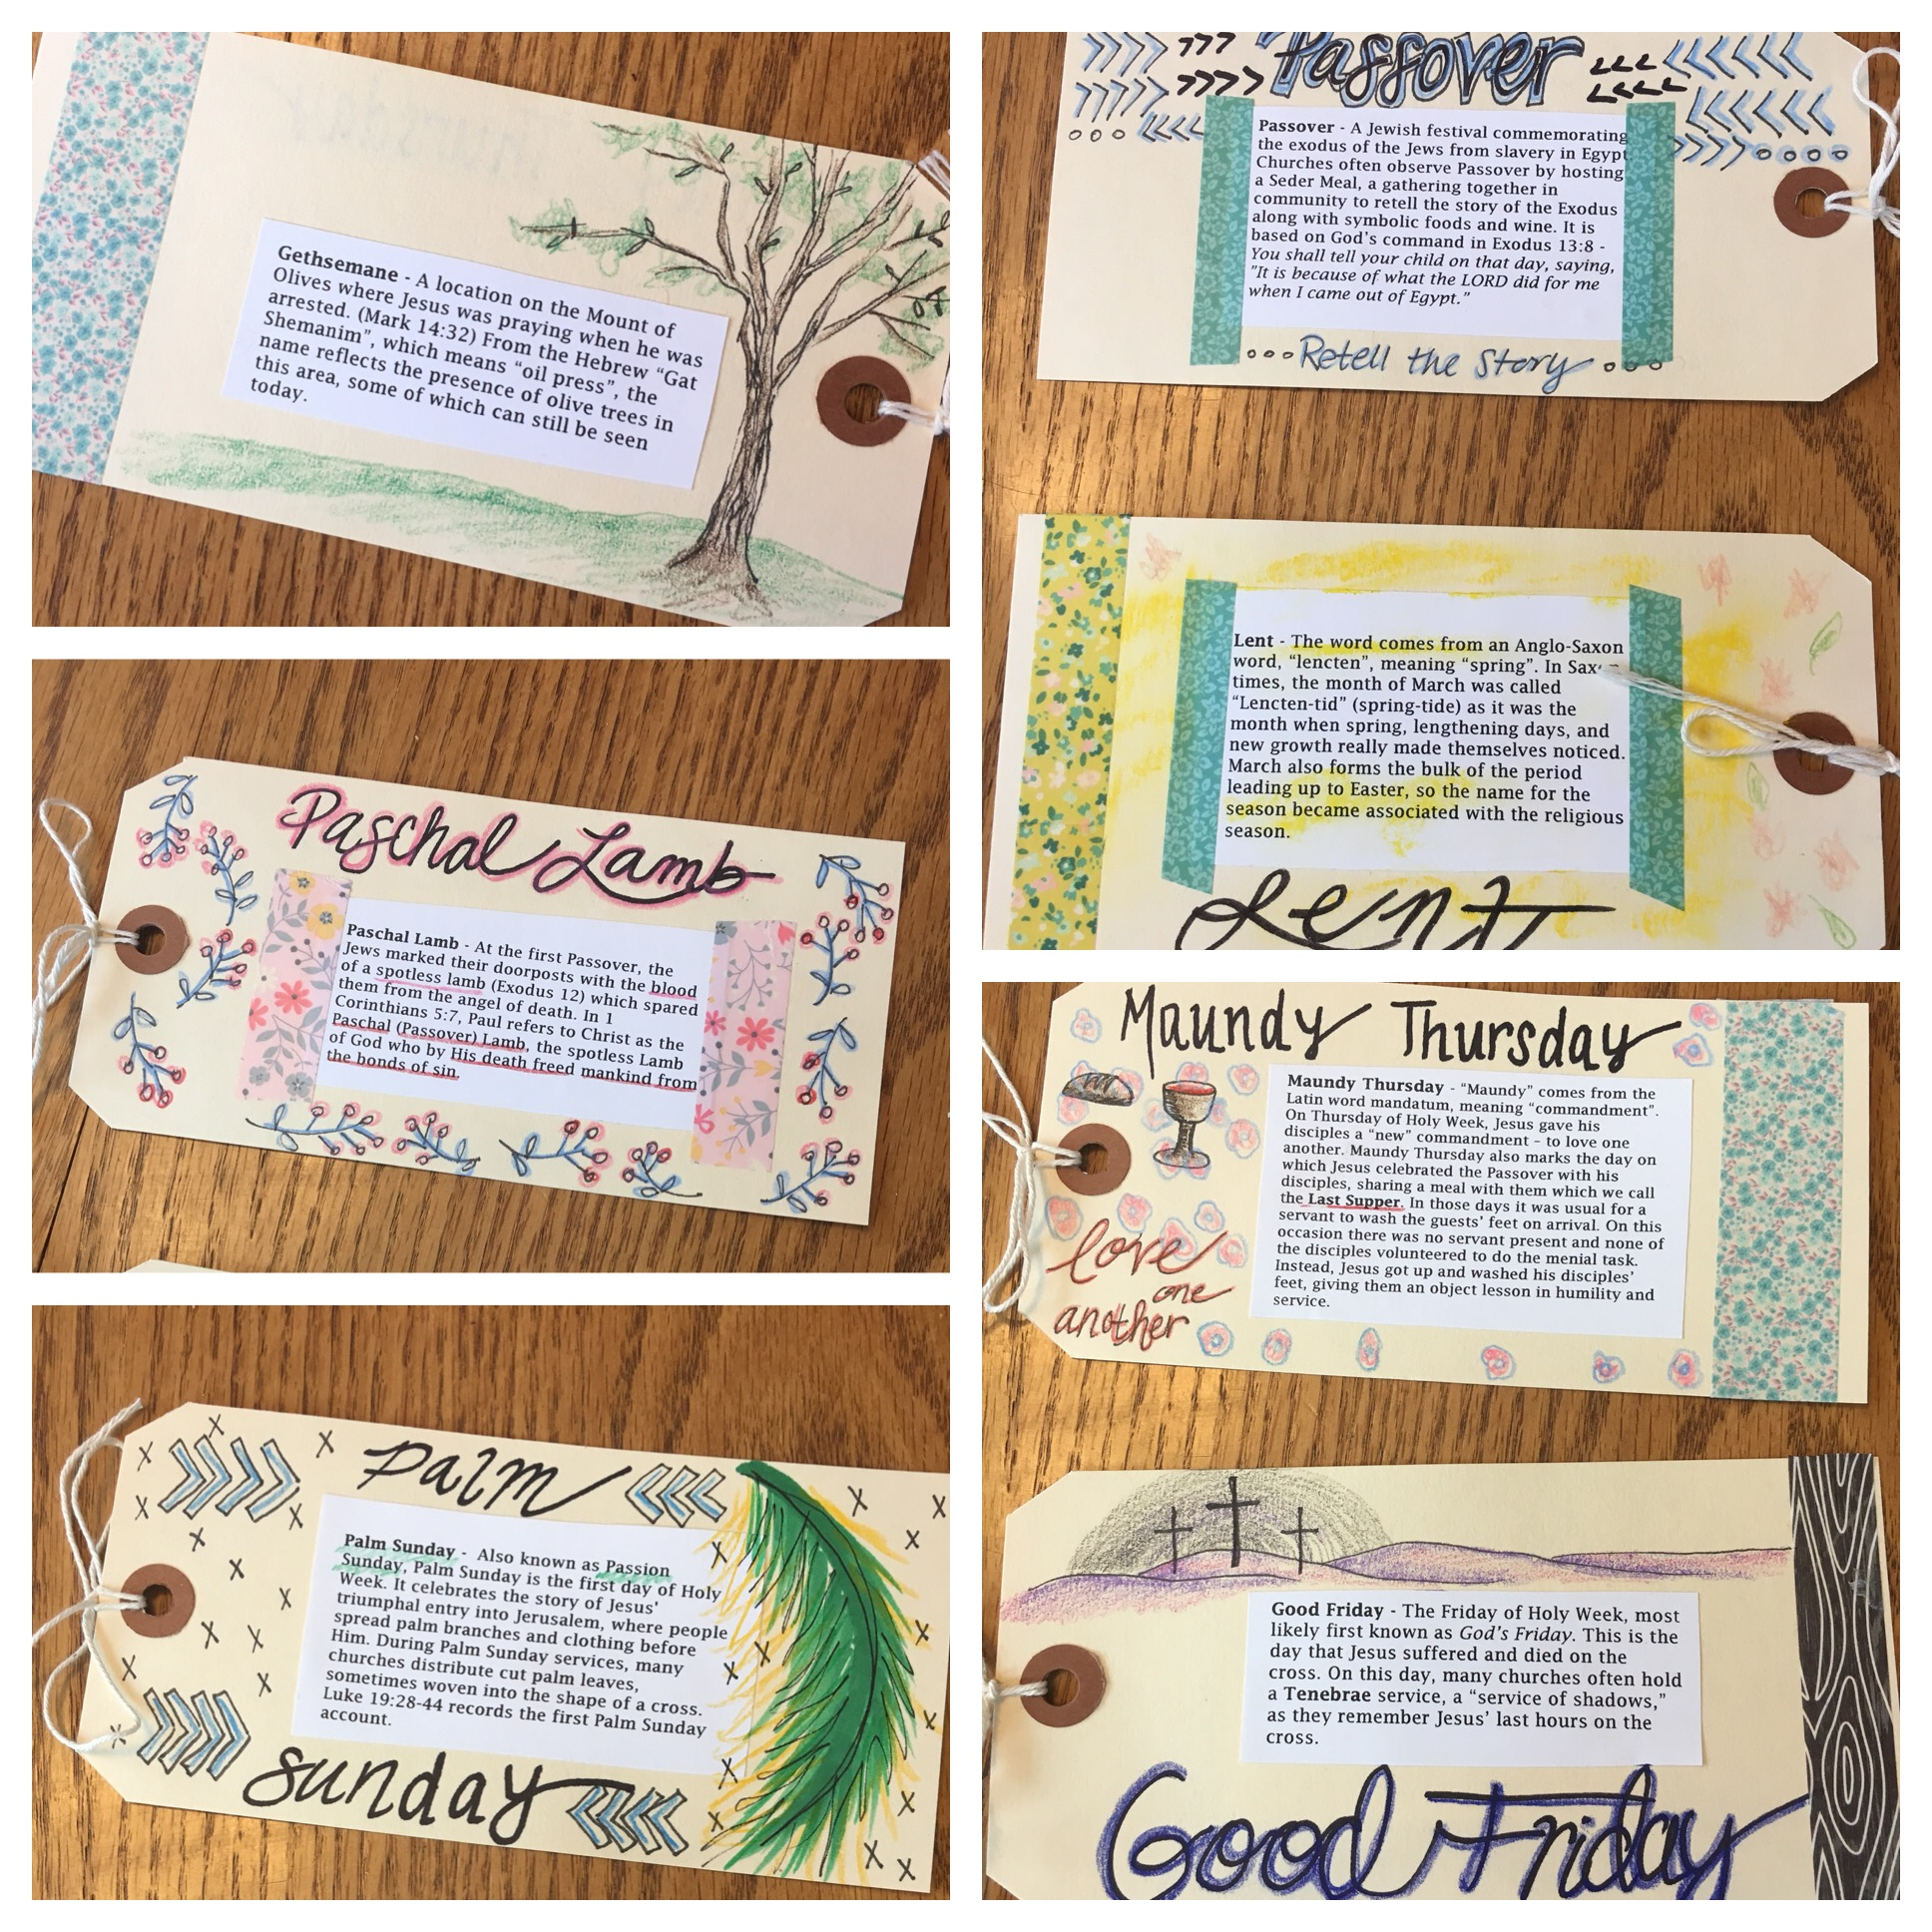 Simple images were part of the hand-drawn designs for the tag booklet done by Visual Faith Coach Laura Schumacher.